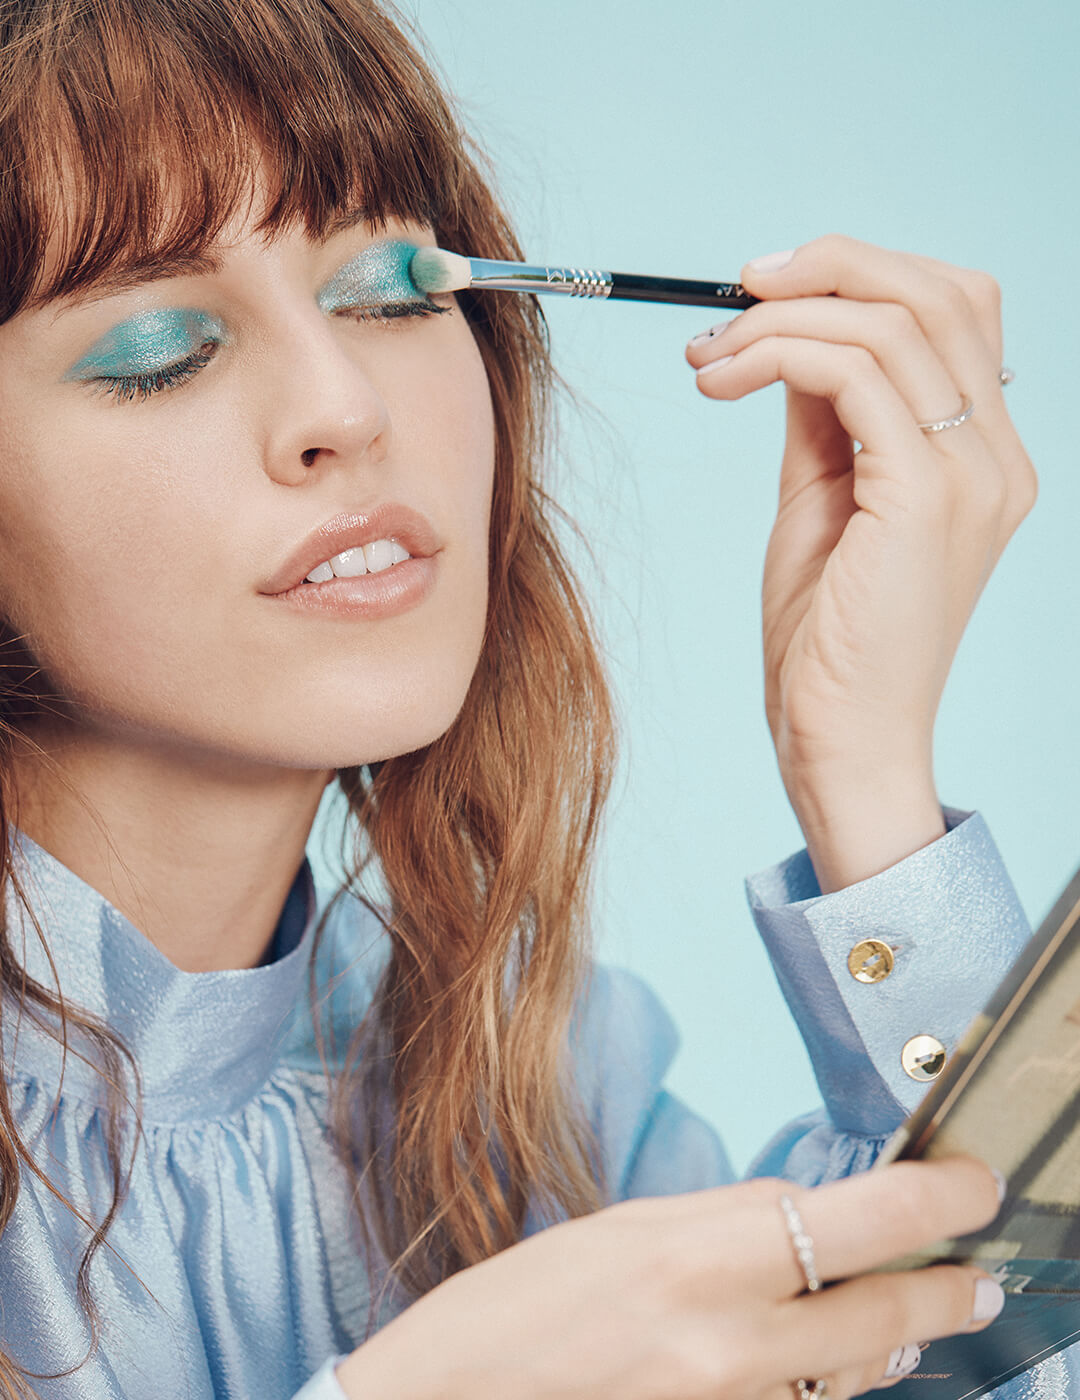 An image of a model putting shimmery blue eyeshadow with a makeup brush